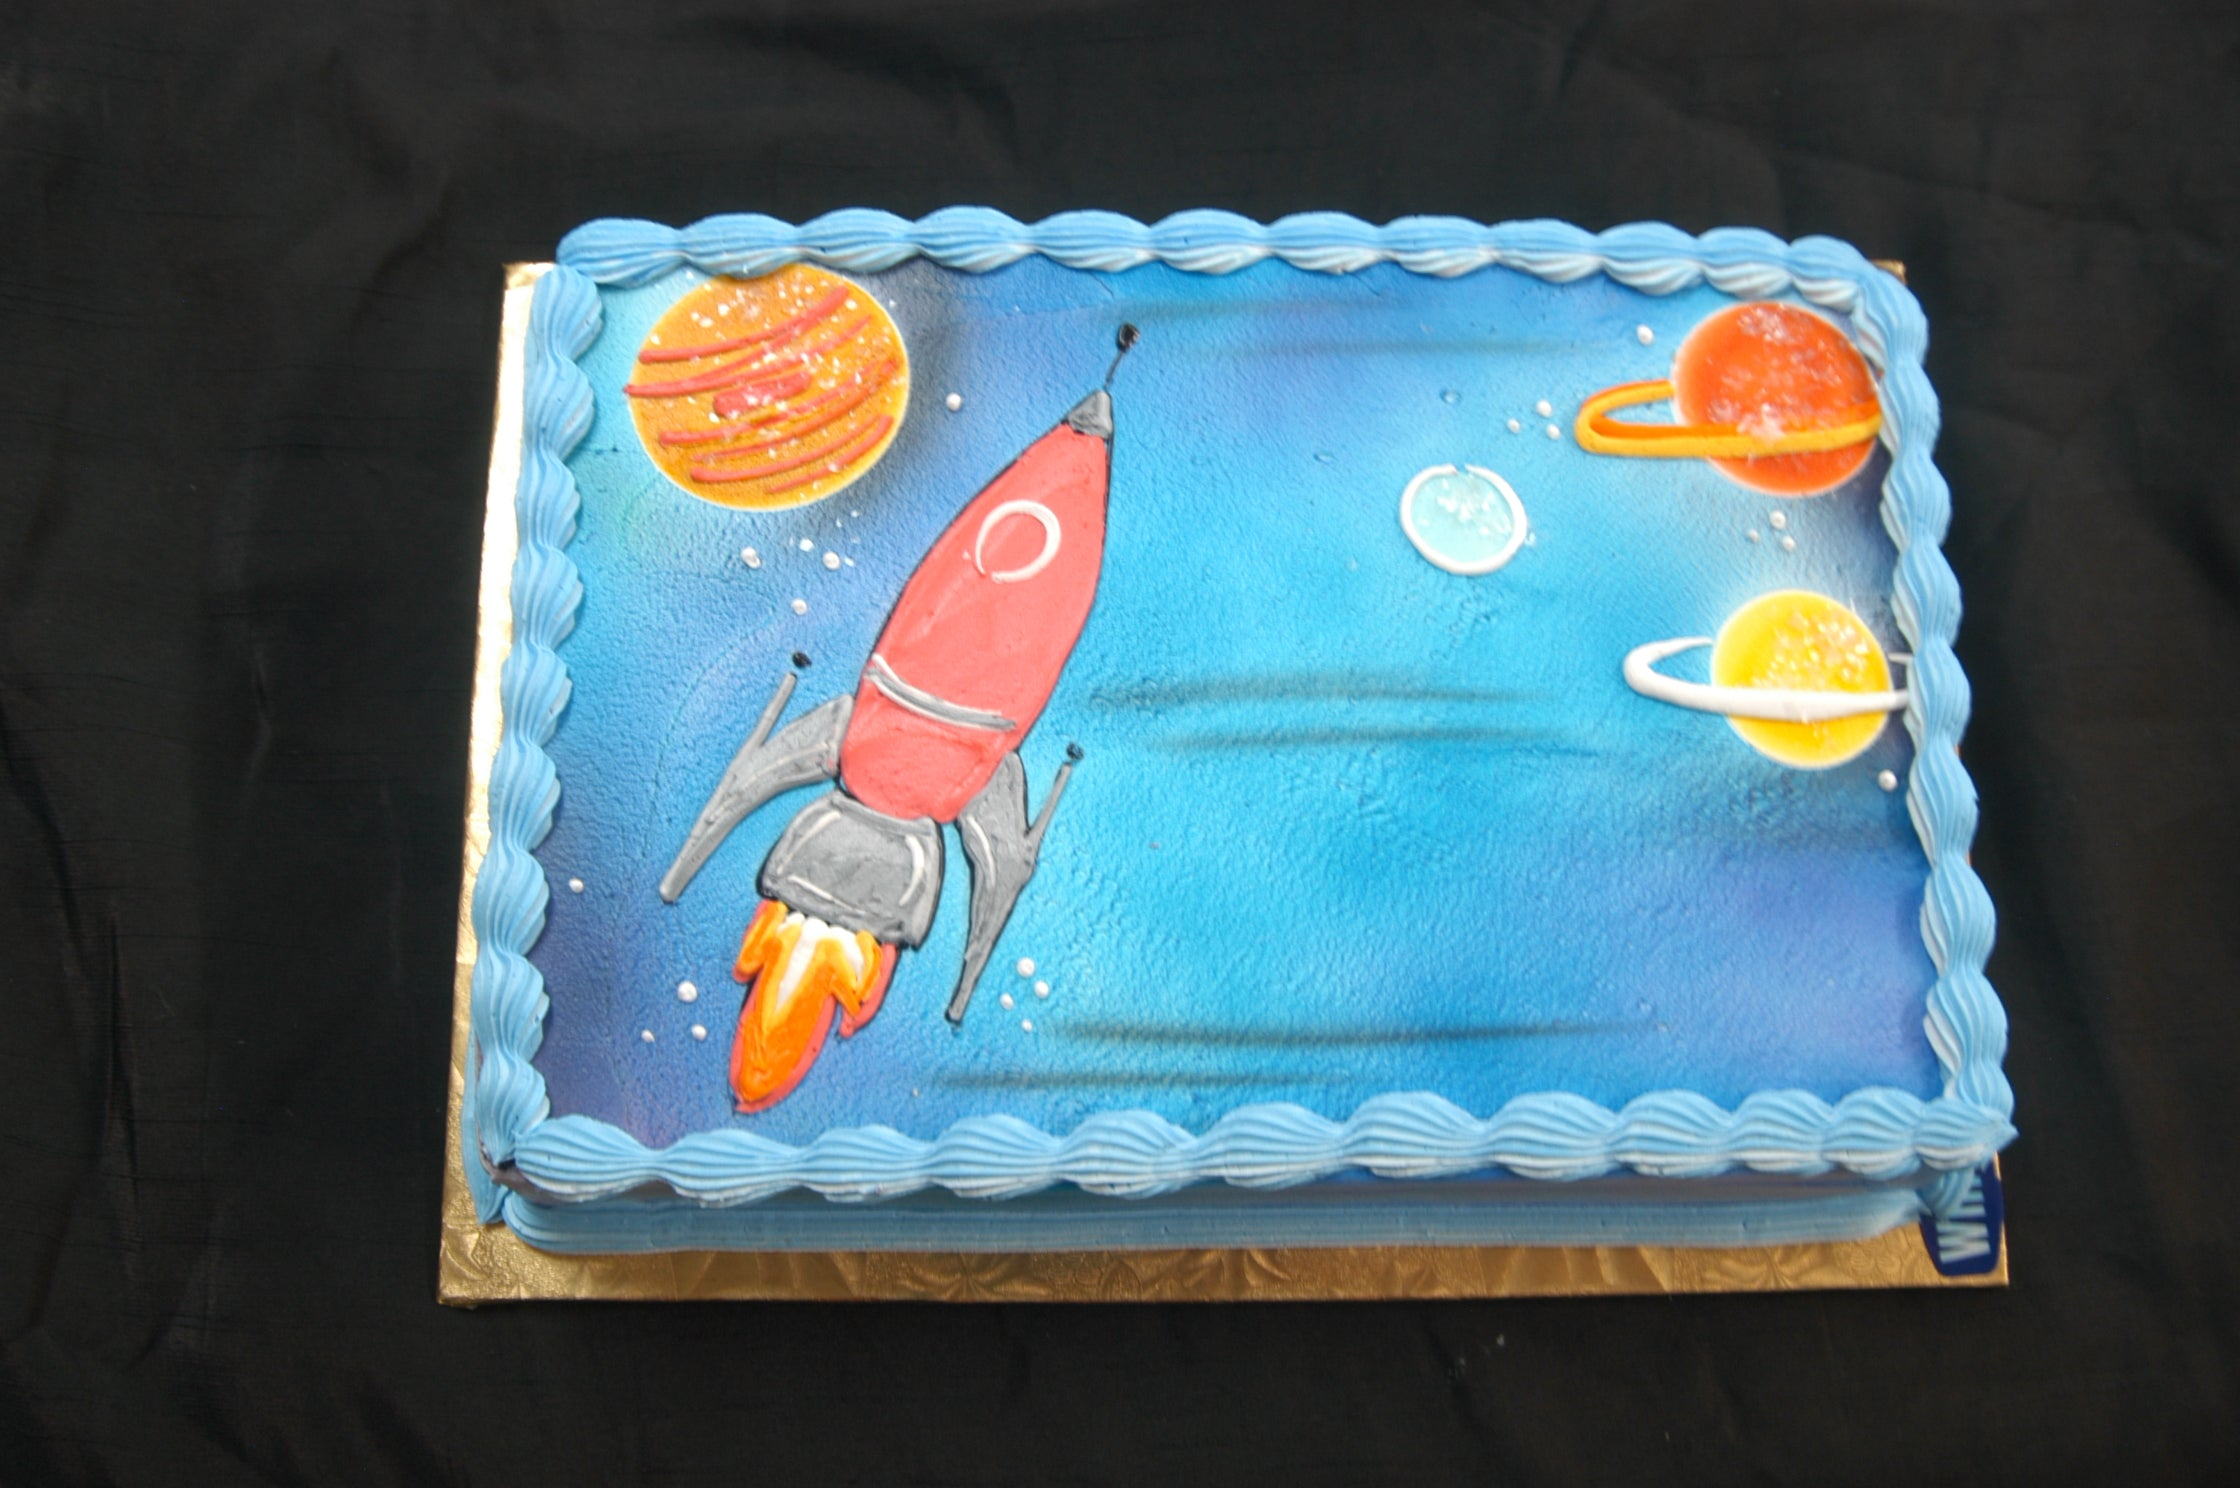 McArthur's Bakery Custom Cake with Rocket Ship and Planets Cake